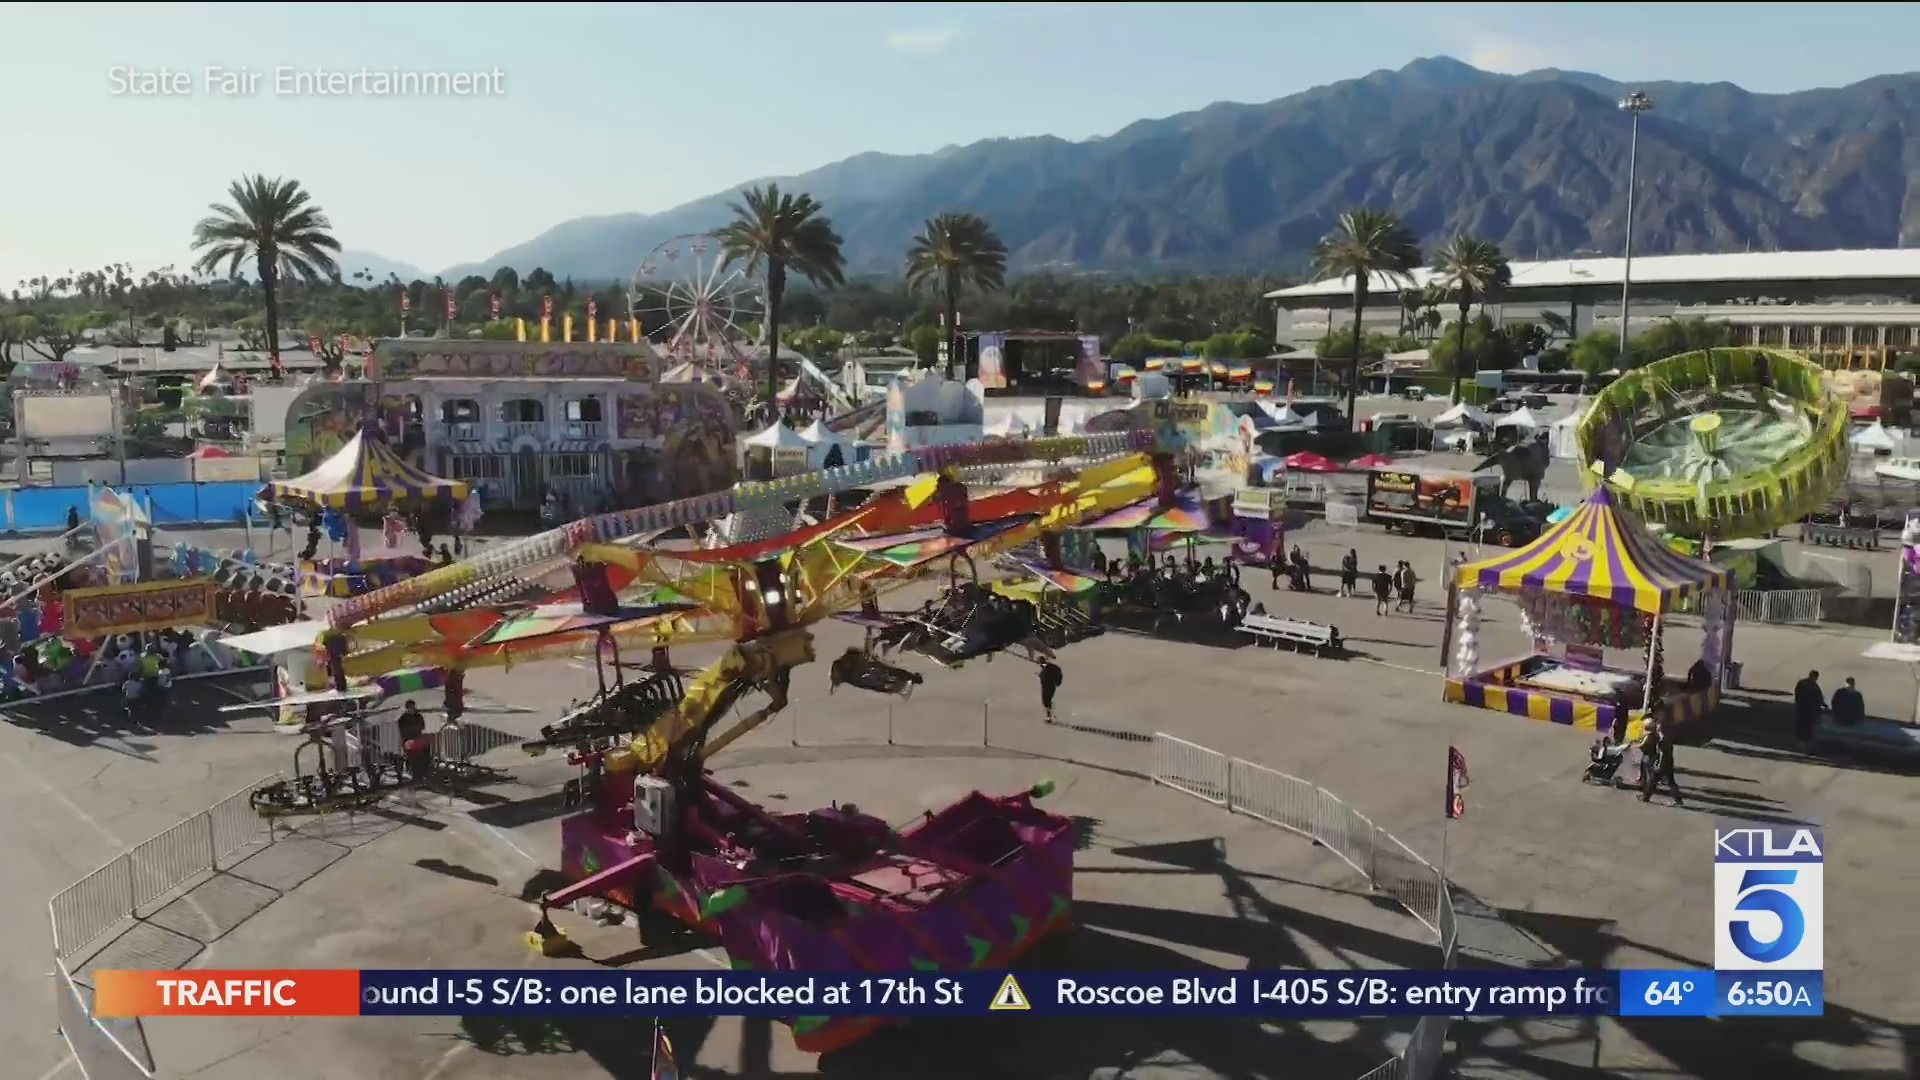 The Official Summer Fair of L.A. kicked off Thursday, July 29, 2021. (State Fair Entertainment)